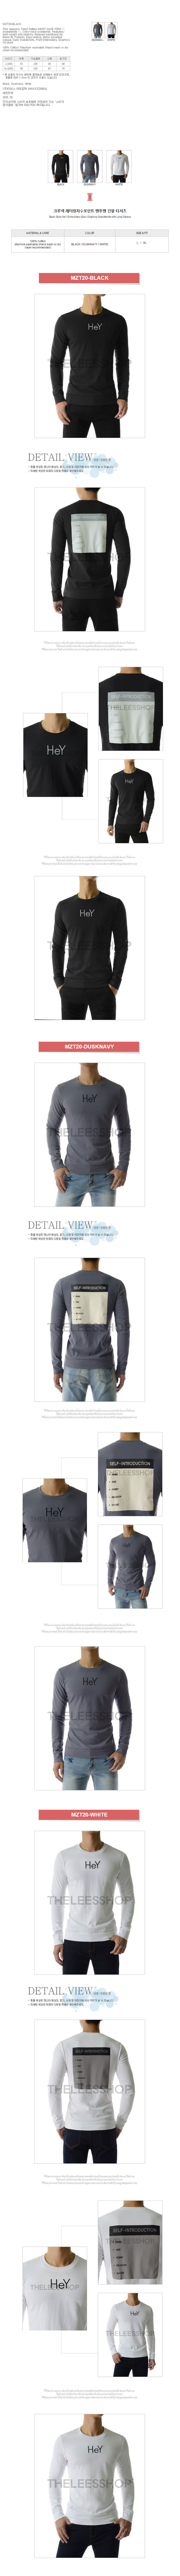 [ KOOLLOOK ] [KoolLook] Crew Neck Print Long Sleeve Sweatshirt MZT20